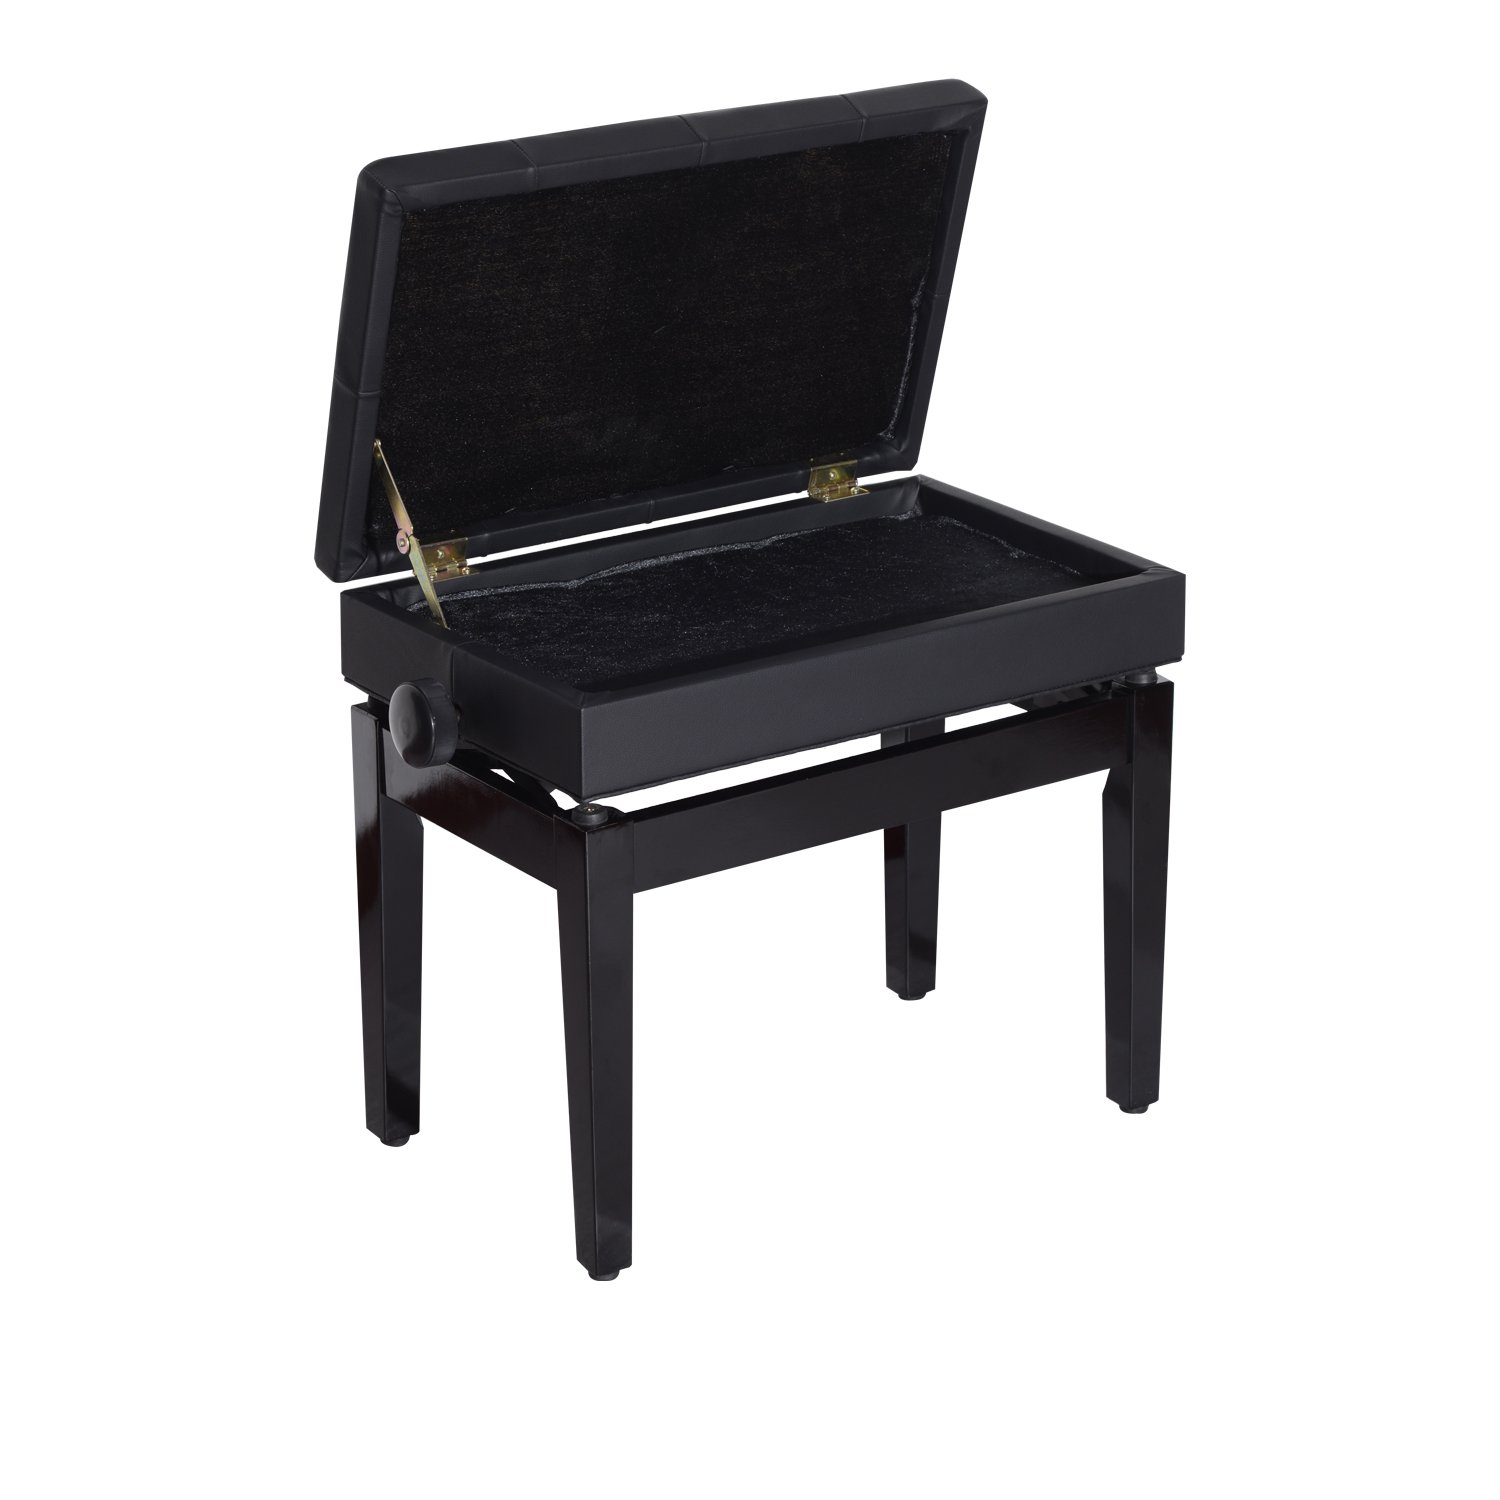 Adjustable piano chair - Amazon Com Homcom 25 Leather Black Adjustable Storage Piano Bench Home Furniture Patio Lawn Garden